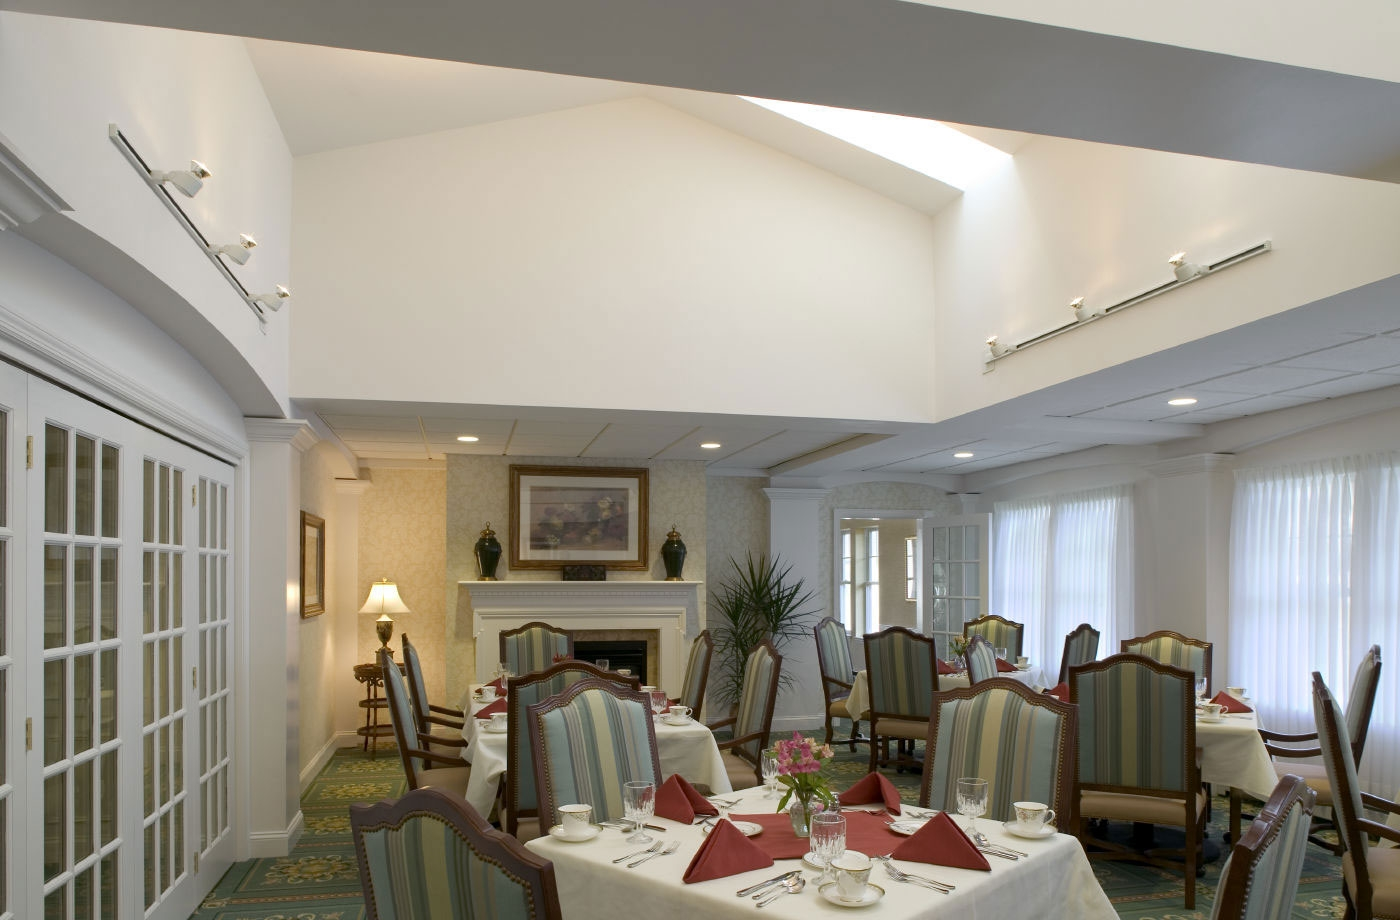 Sunshine from the skylight brightens this dining area designed for active seniors